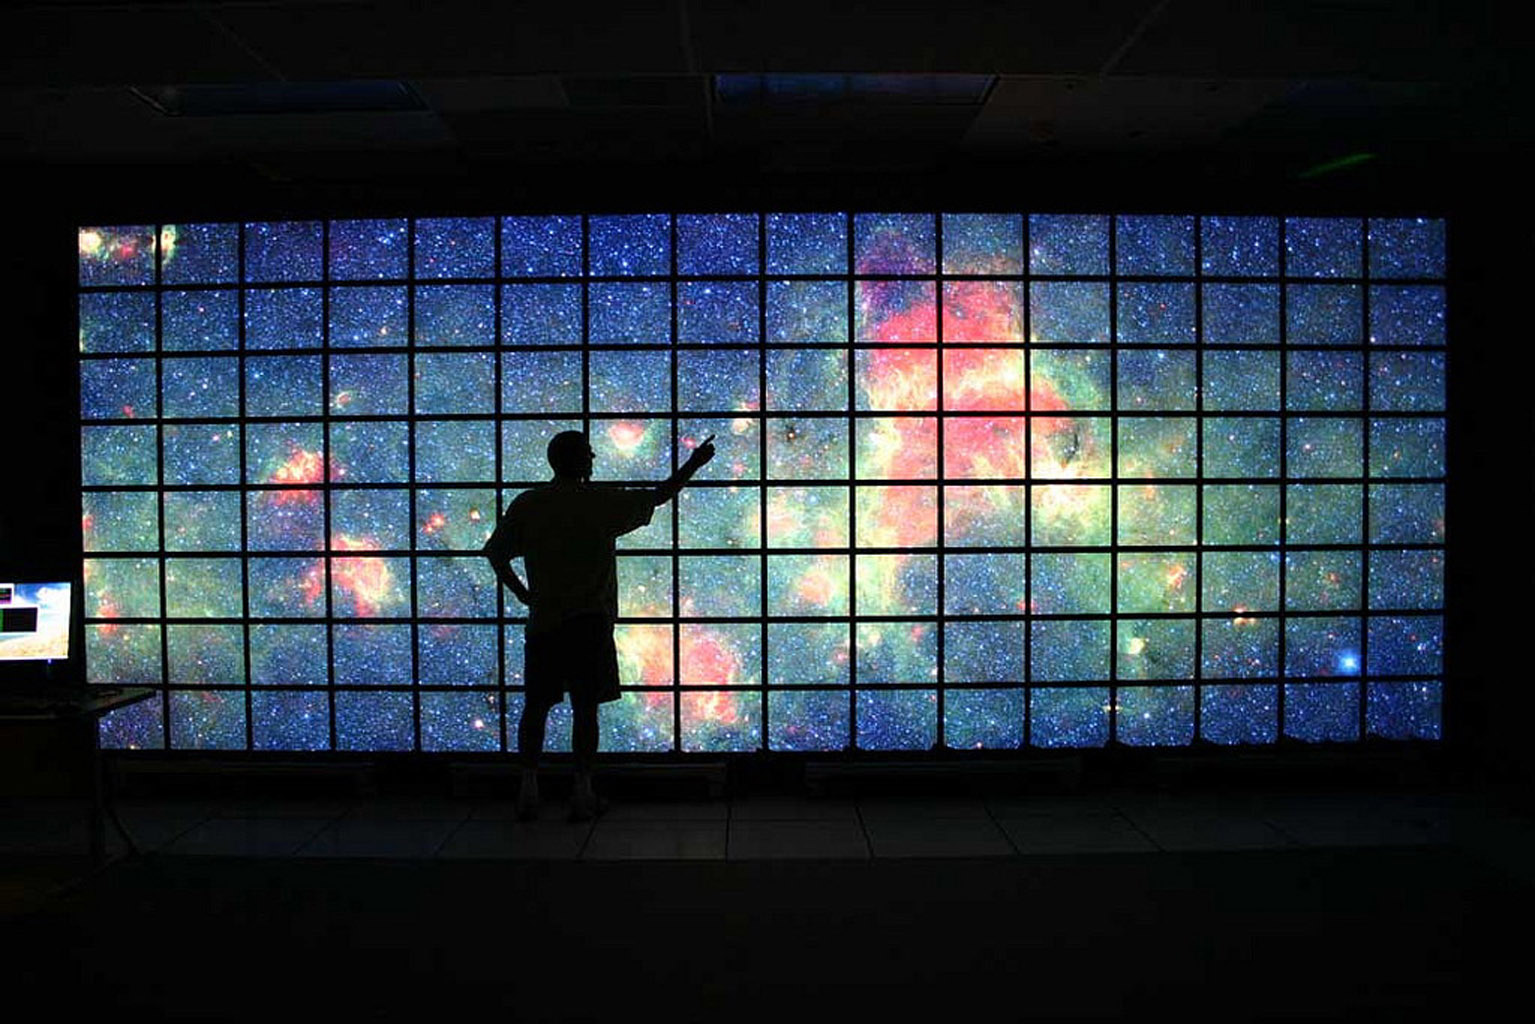 Big Screen  >> Space Images Big Data On The Big Screen